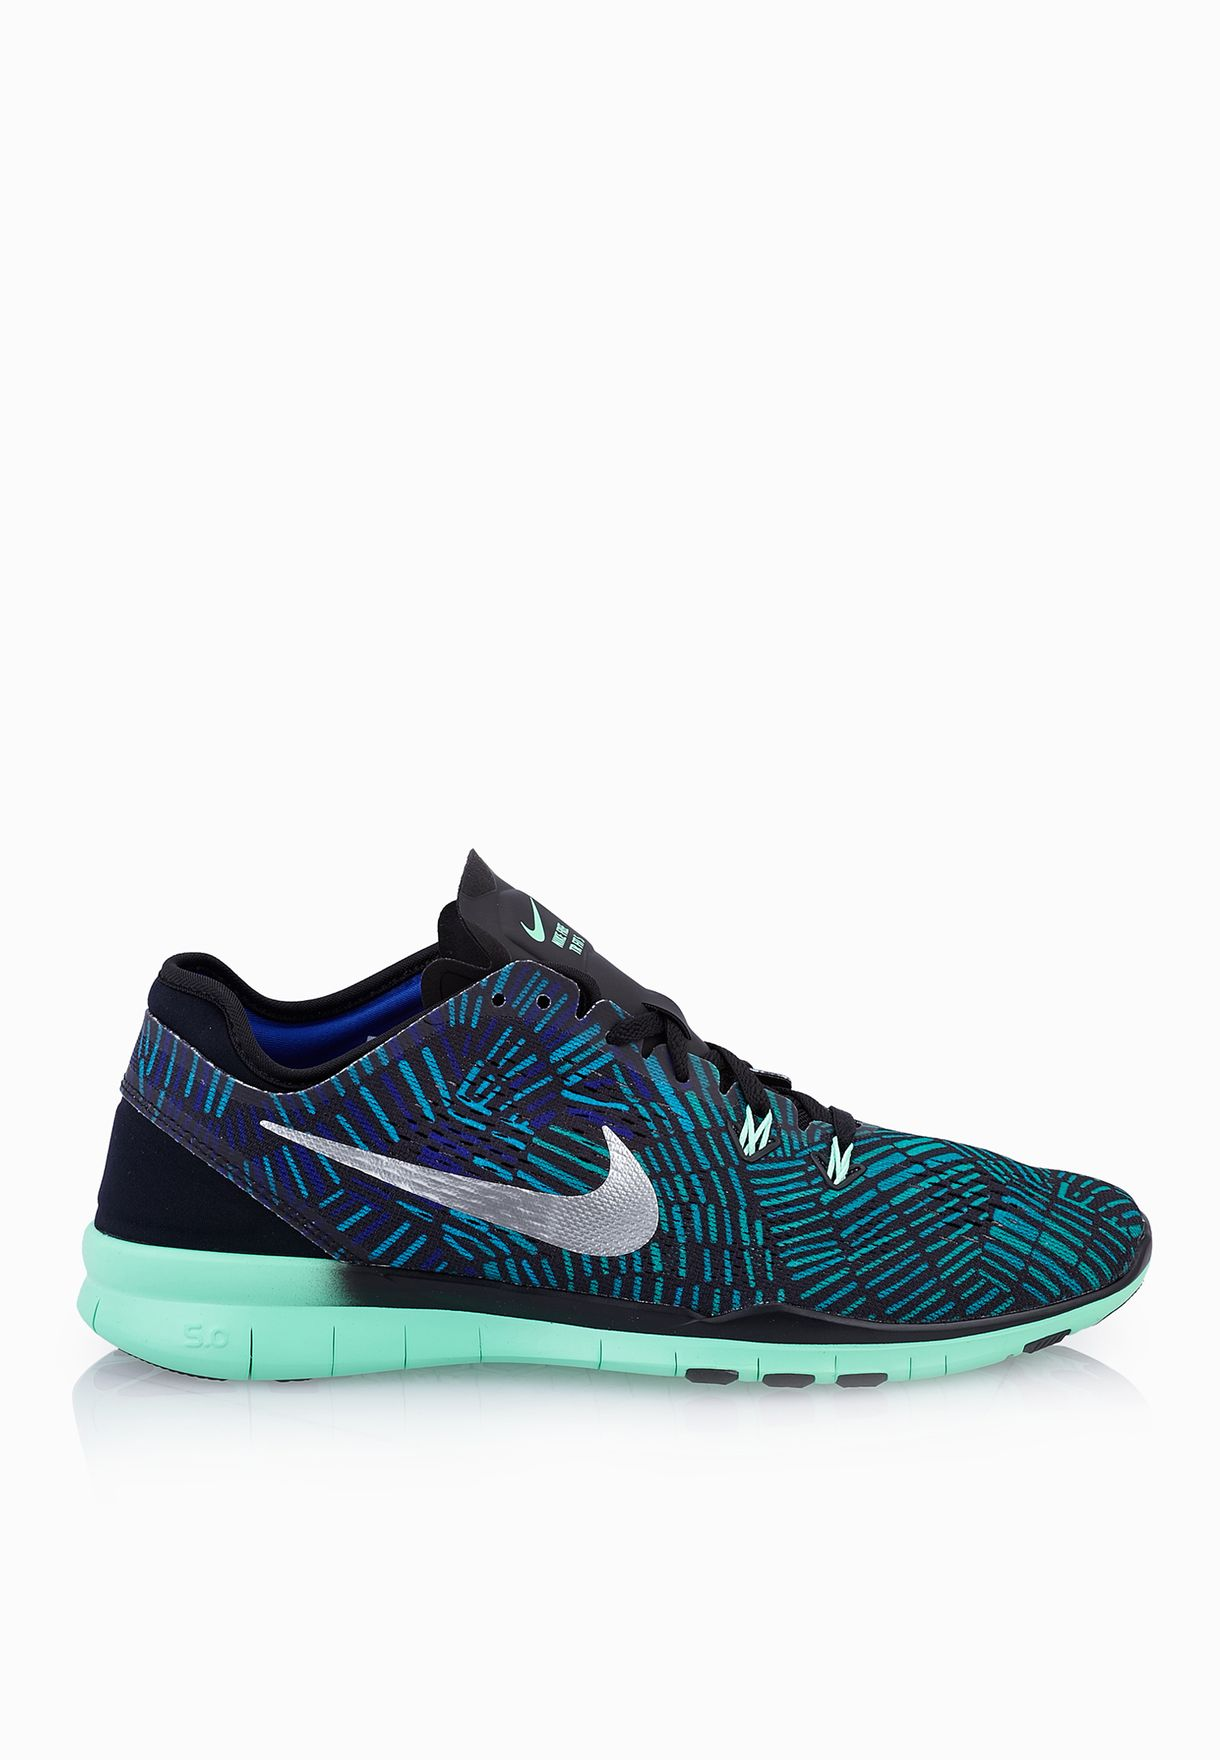 362429f73c2f Shop Nike multicolor Free 5.0 Tr Fit 5 Prt 704695-016 for Women in ...